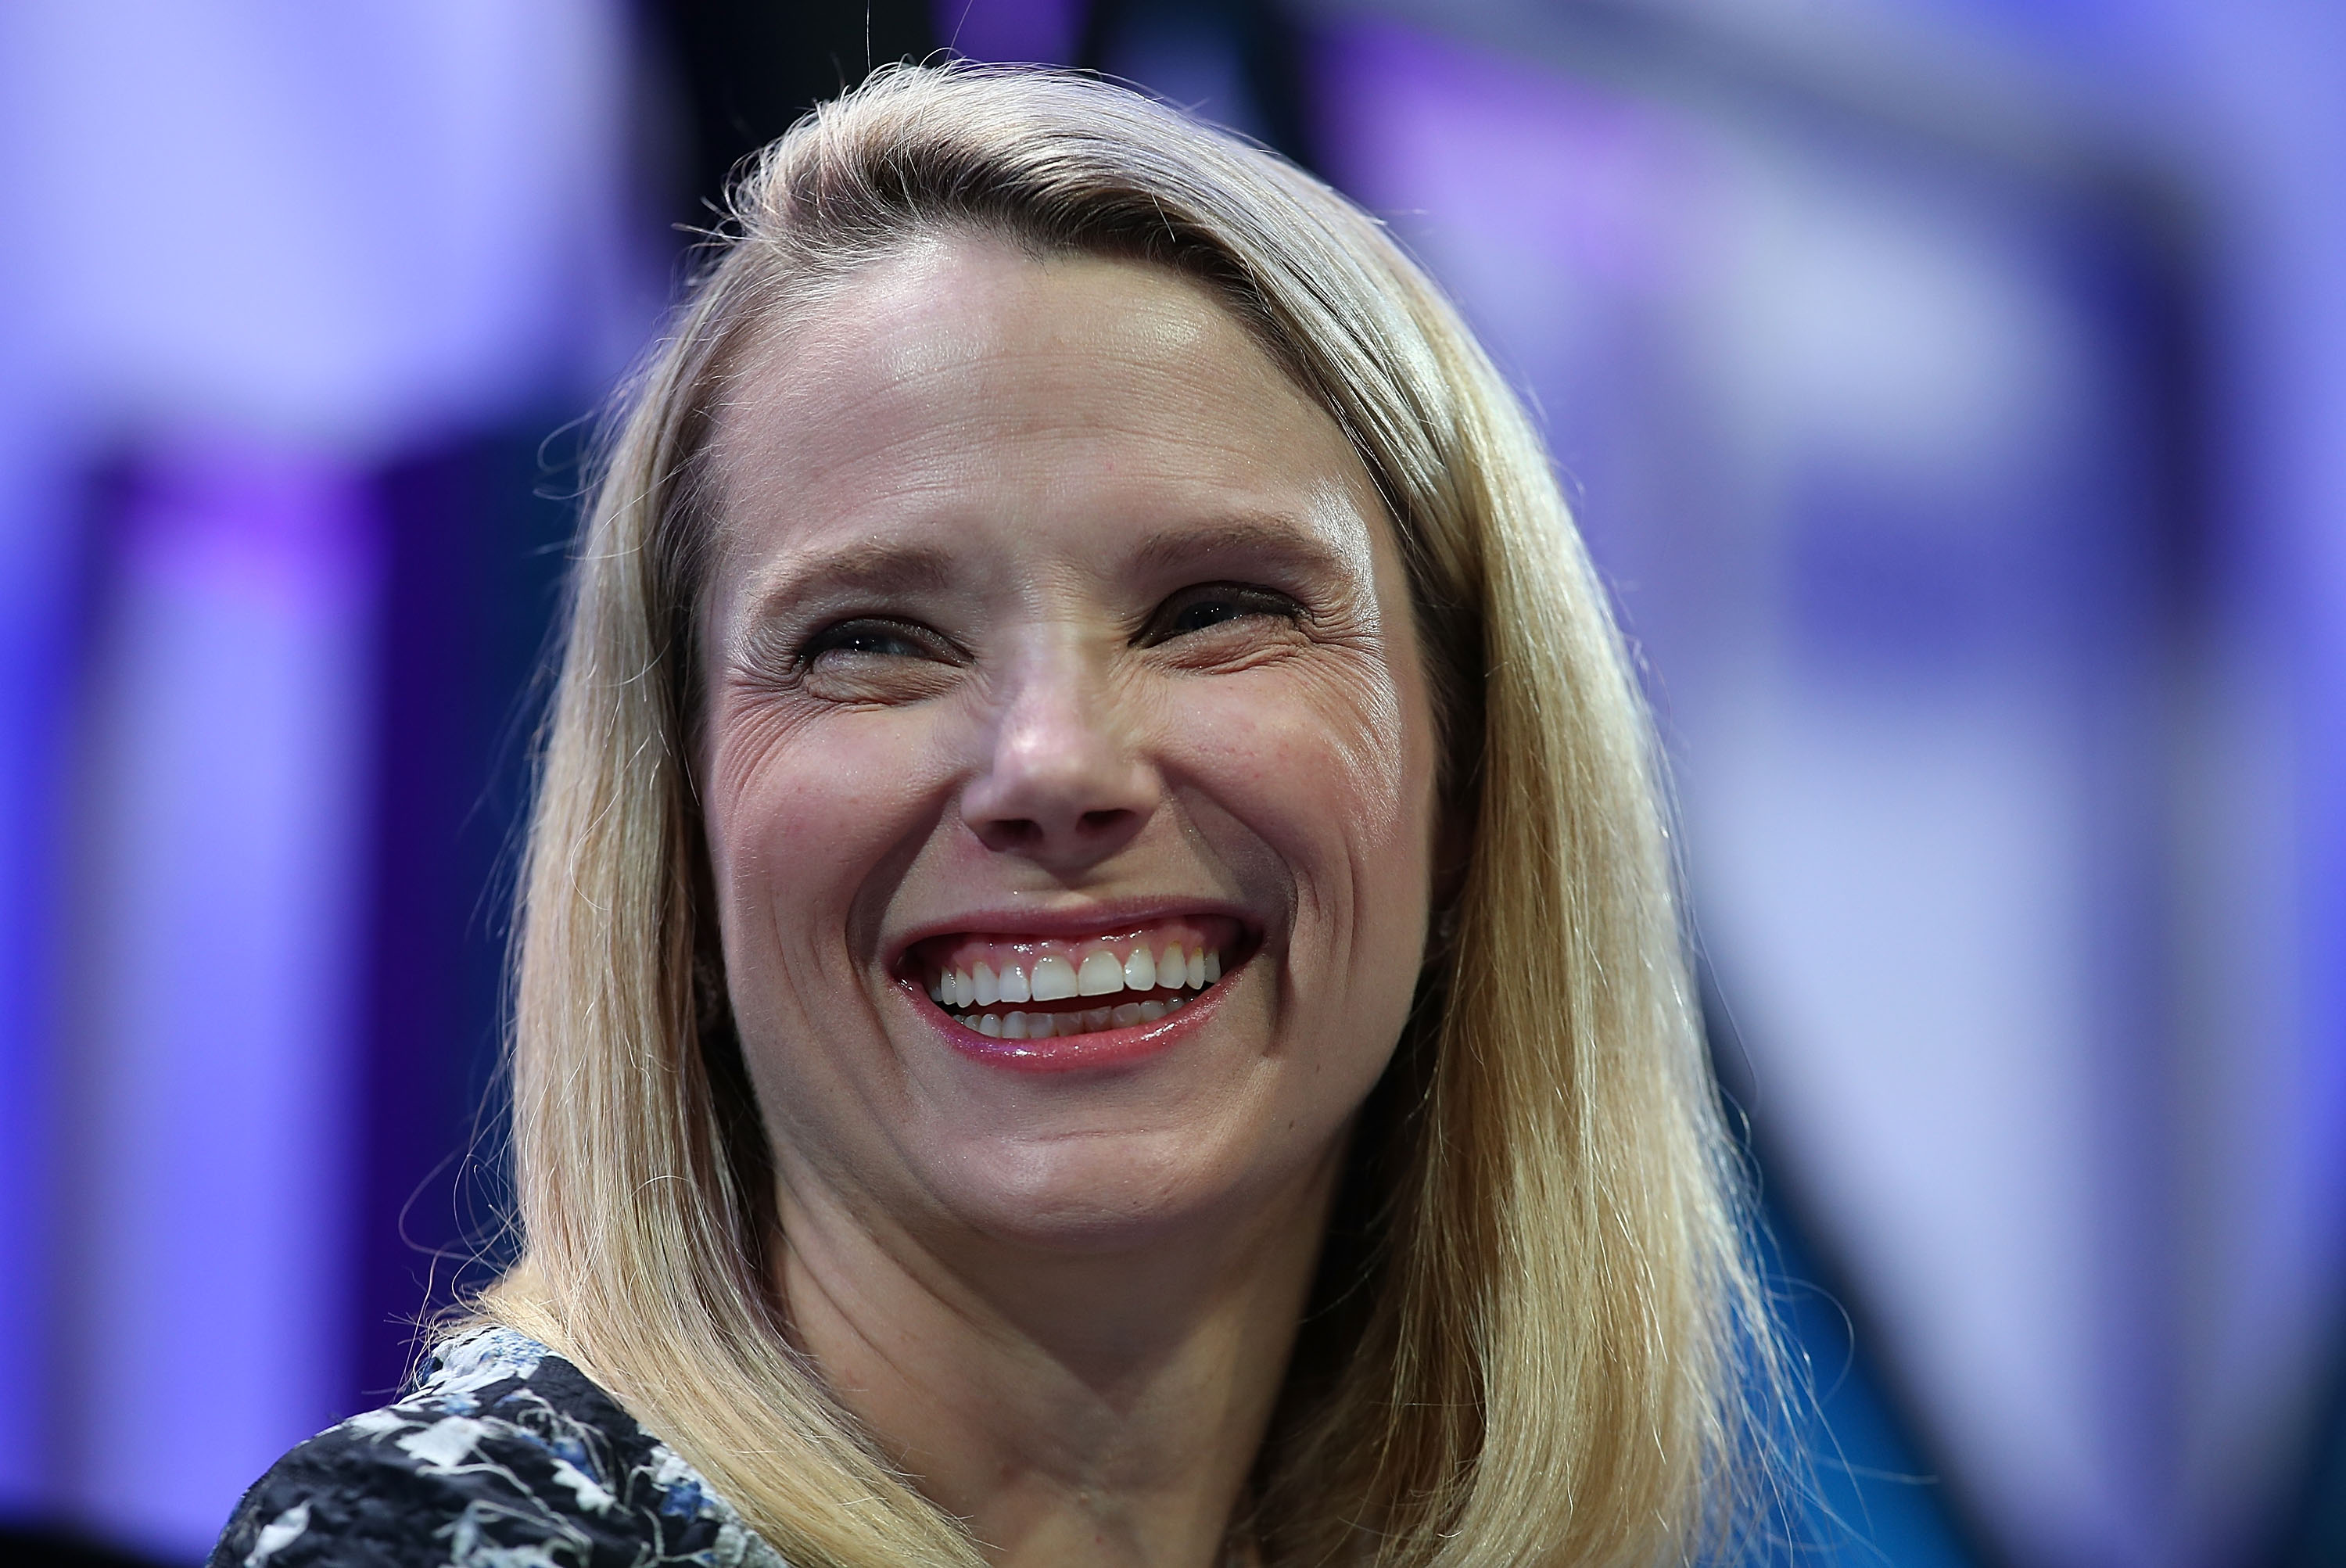 Yahoo president and CEO Marissa Mayer speaks during the Fortune Global Forum on Nov. 3, 2015 in San Francisco.